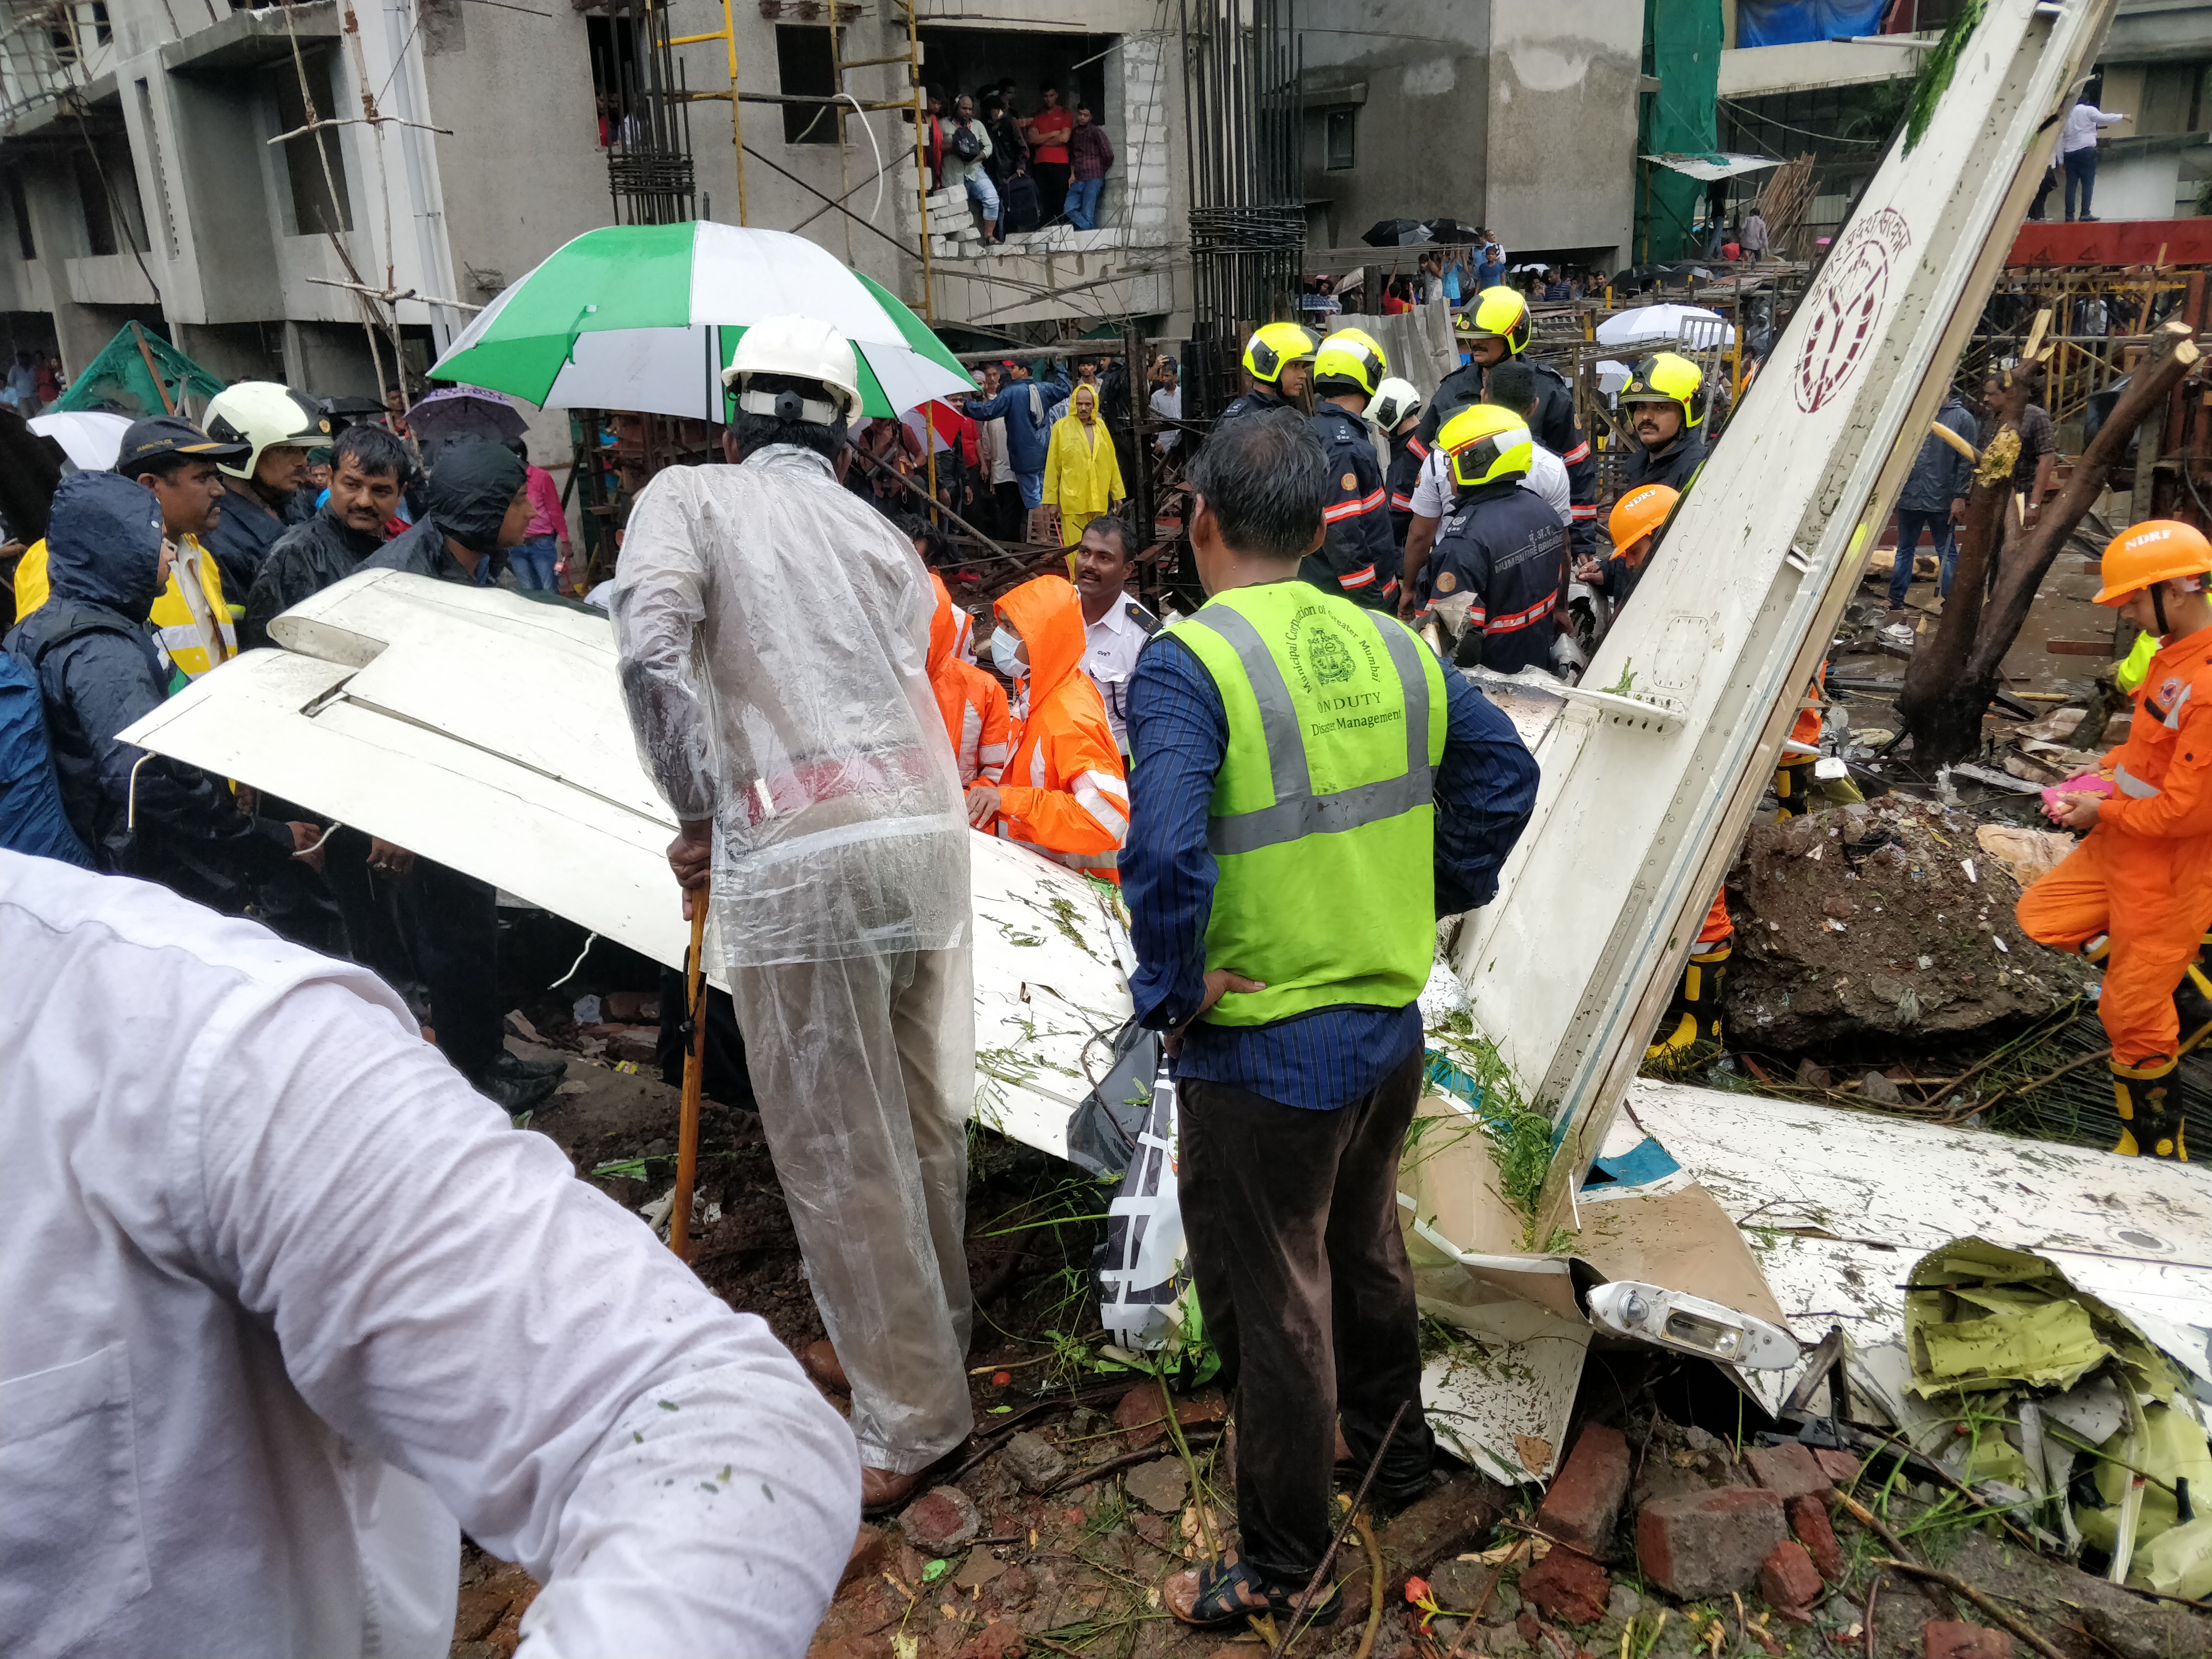 Rescue personnel at the crash site in Mumbai. (Credit: Shone Sateesh/Scroll.in)